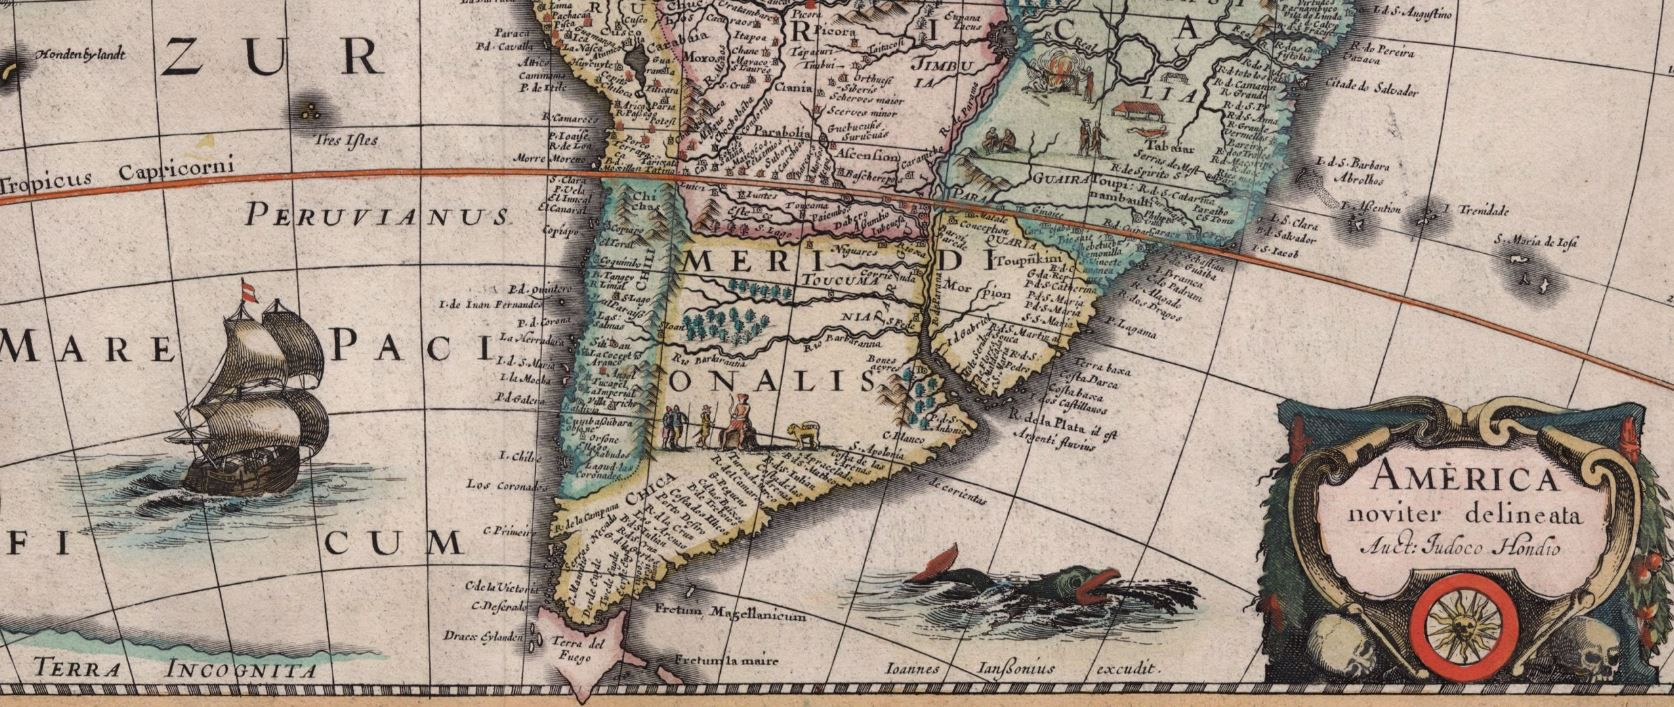 America noviter delineata auct judoco hondio save texas history jan jansson america noviter delineata auct judoco hondio amsterdam 1623 map 93814 holcomb digital map collection archives and records program gumiabroncs Gallery